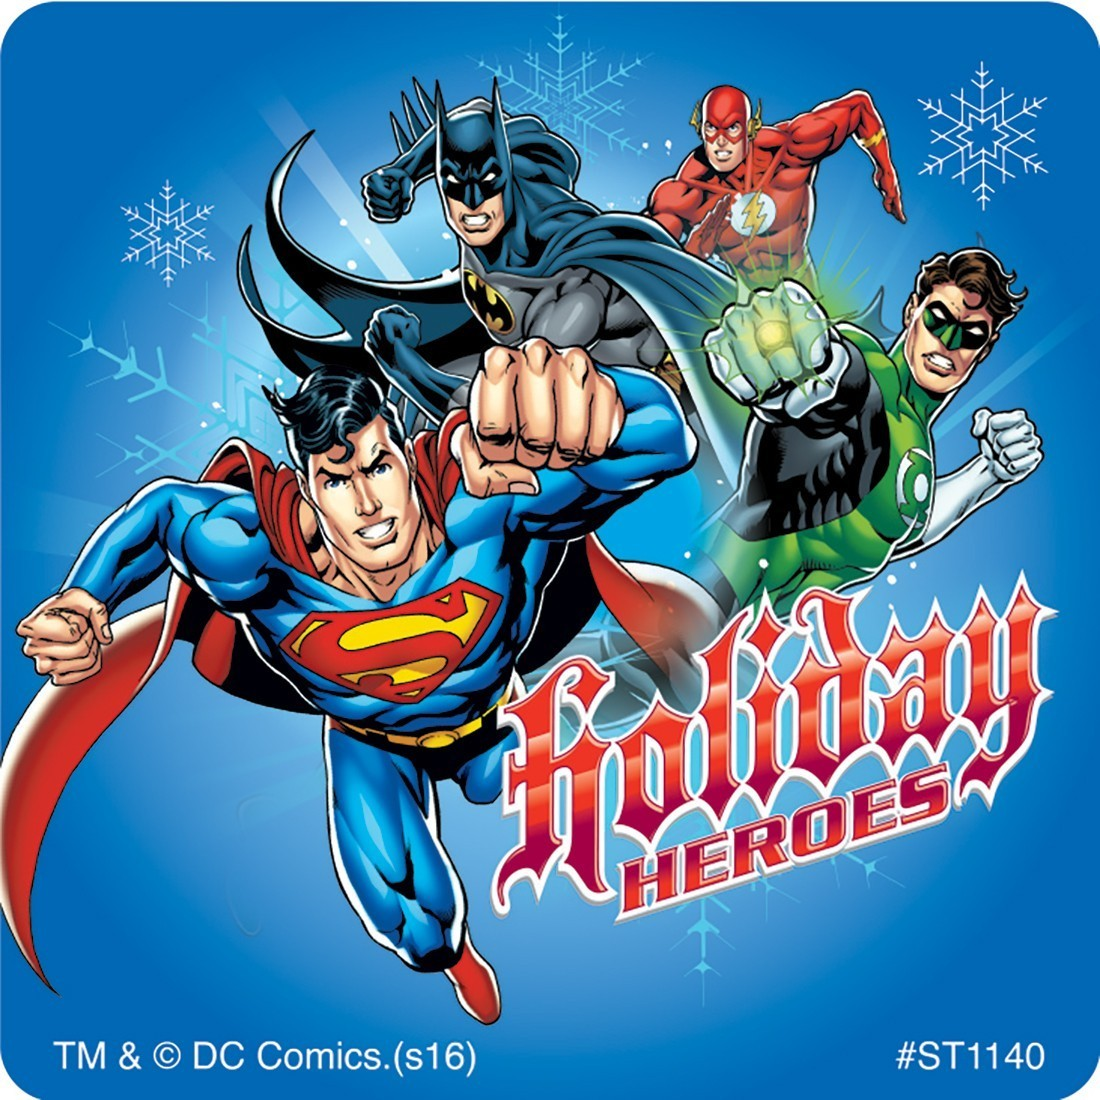 Justice League Christmas Stickers [image] Slider image-0 Slider image-1 Slider image-2 ...